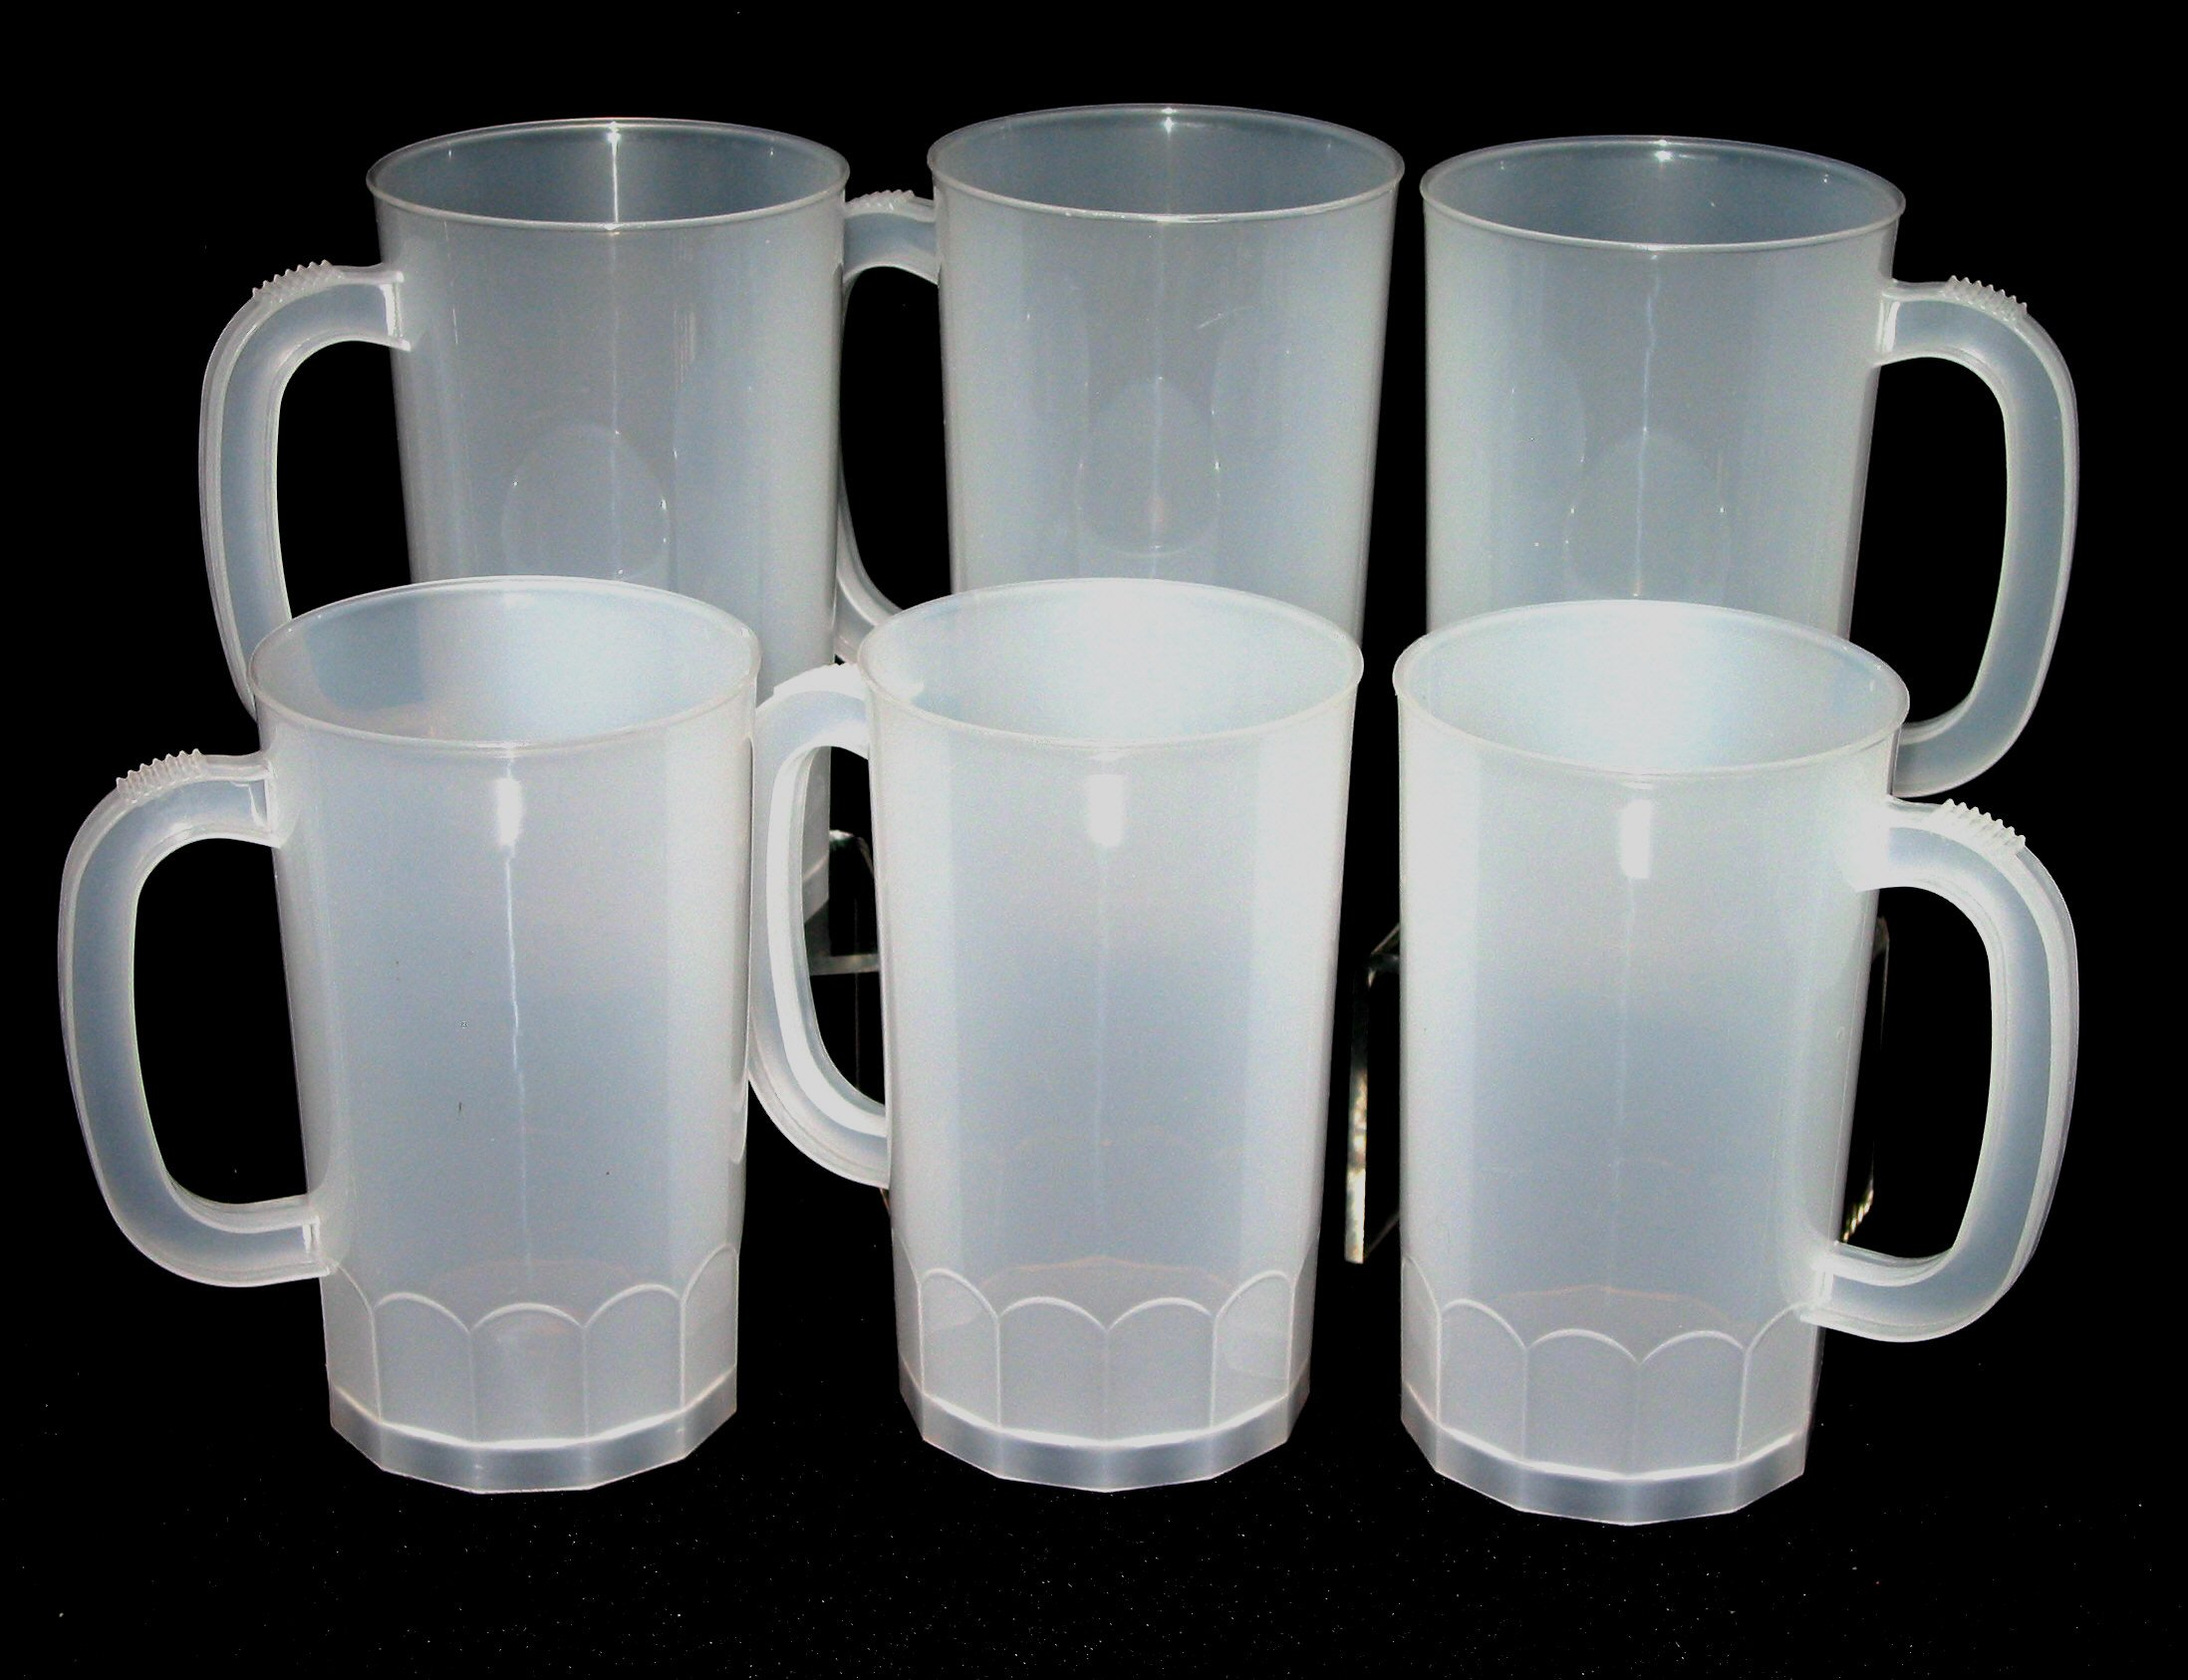 Talisman, Plastic Beer Mugs, Large 32 Ounce, Pack 50, Color Natural by Jean's Plastics